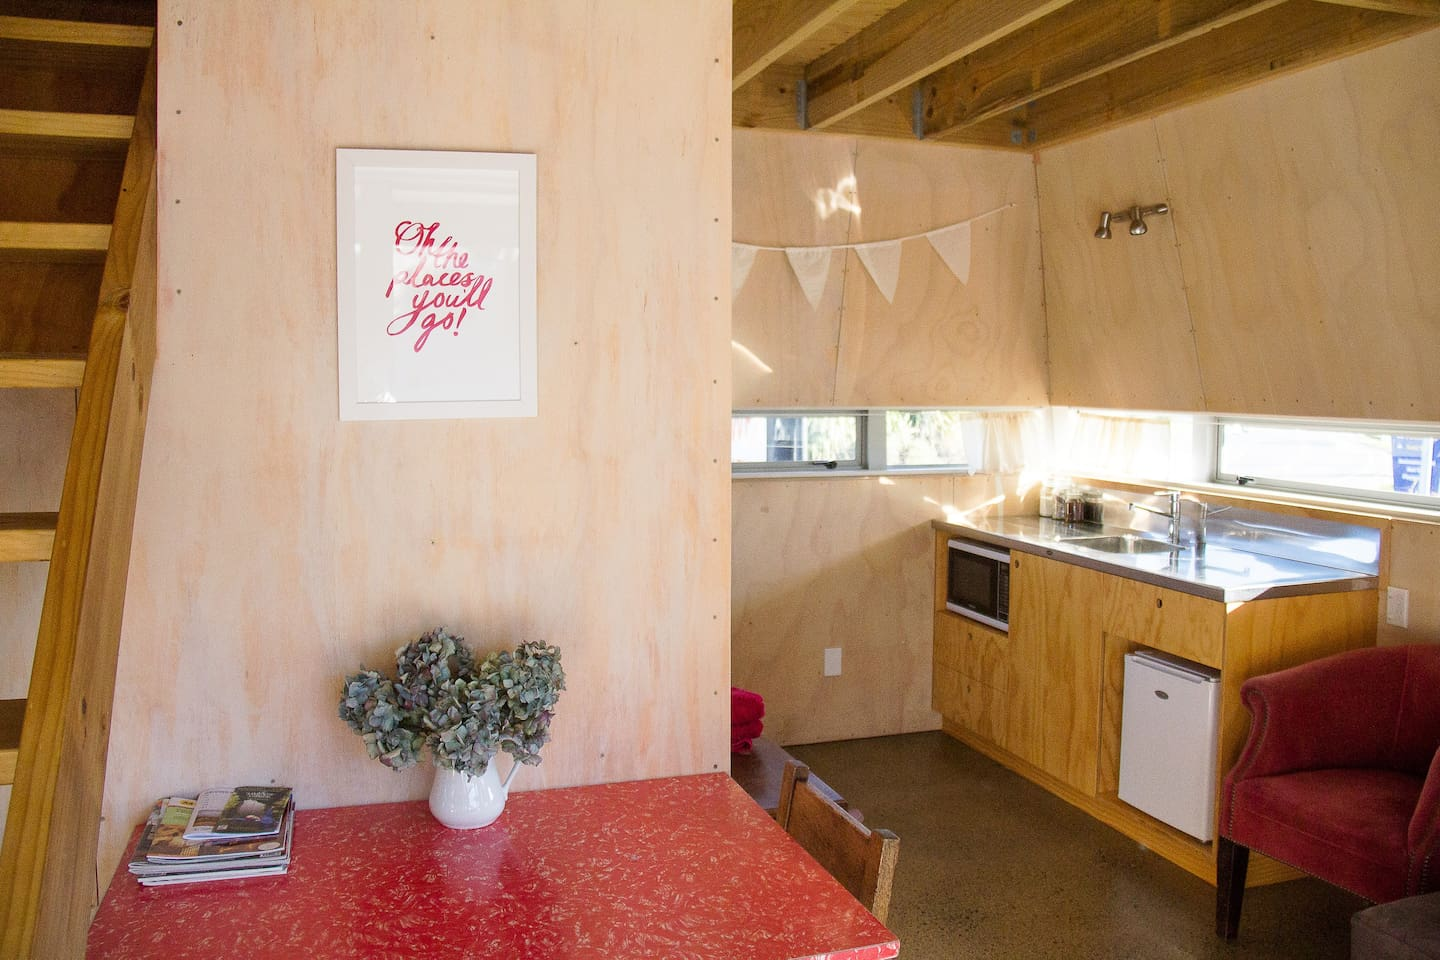 living and kitchen area. Our chalet has a kitchenette with a  fridge  and microwave